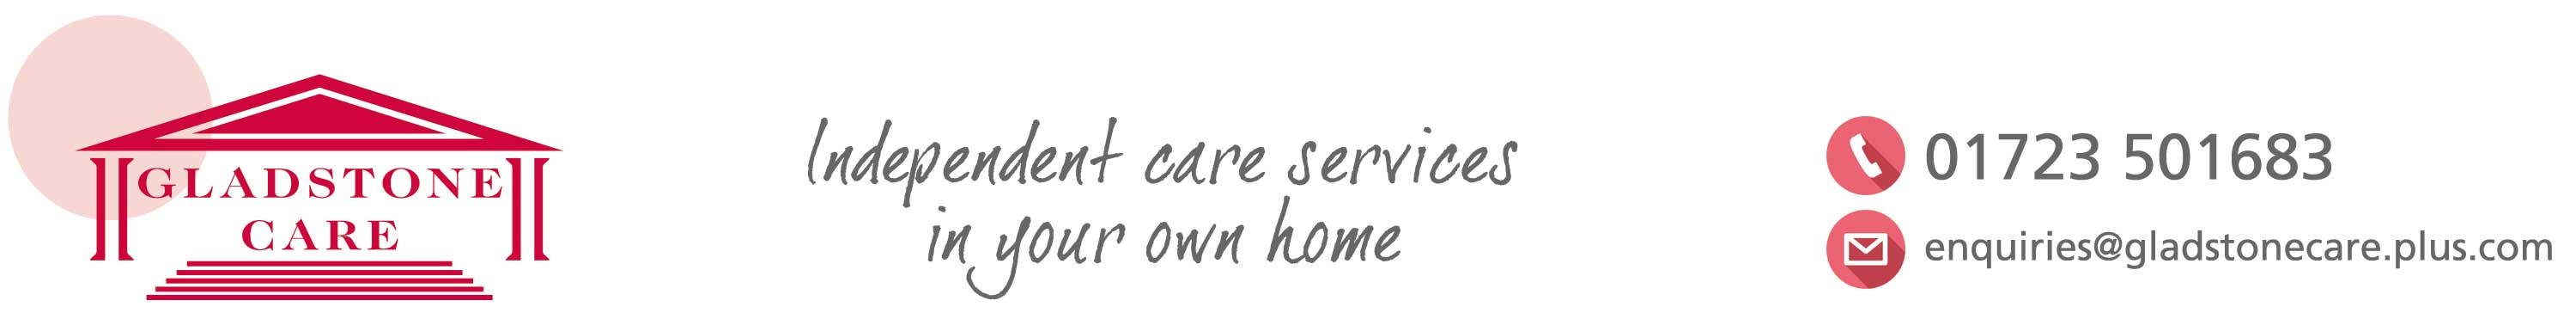 Gladstone Care provide independent care services in your own home, in the North Yorkshire area, scarborough, Filey Pickering